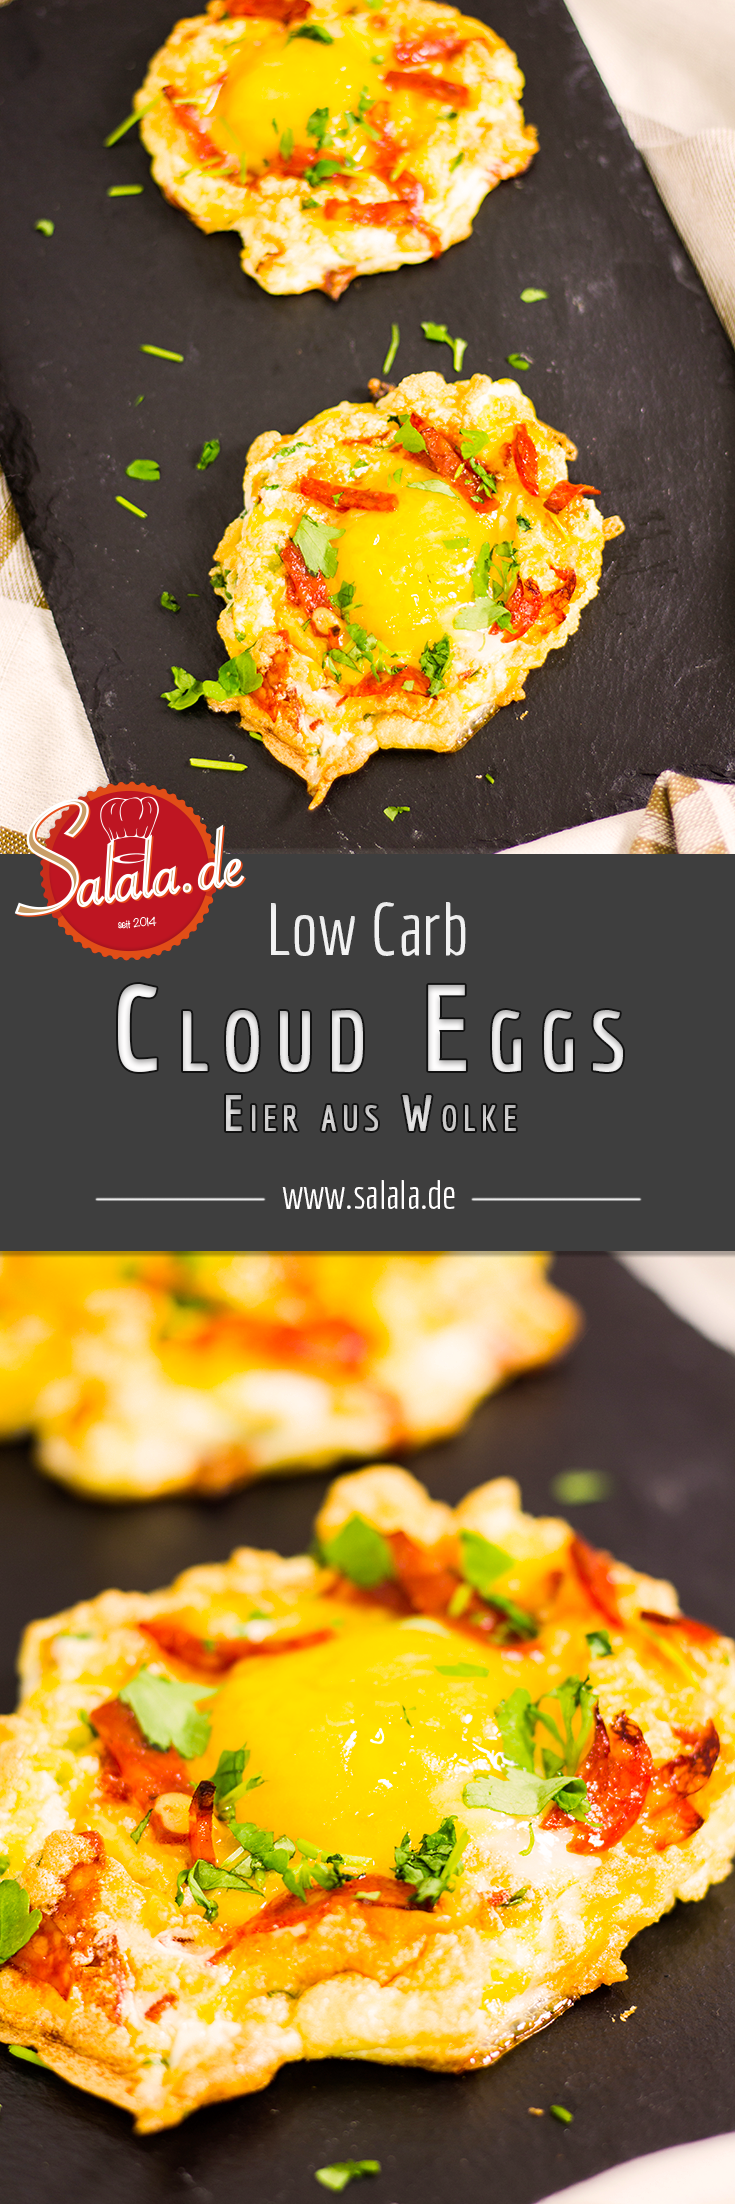 Low Carb Cloud Eggs mit Chorizo #cloudeggs